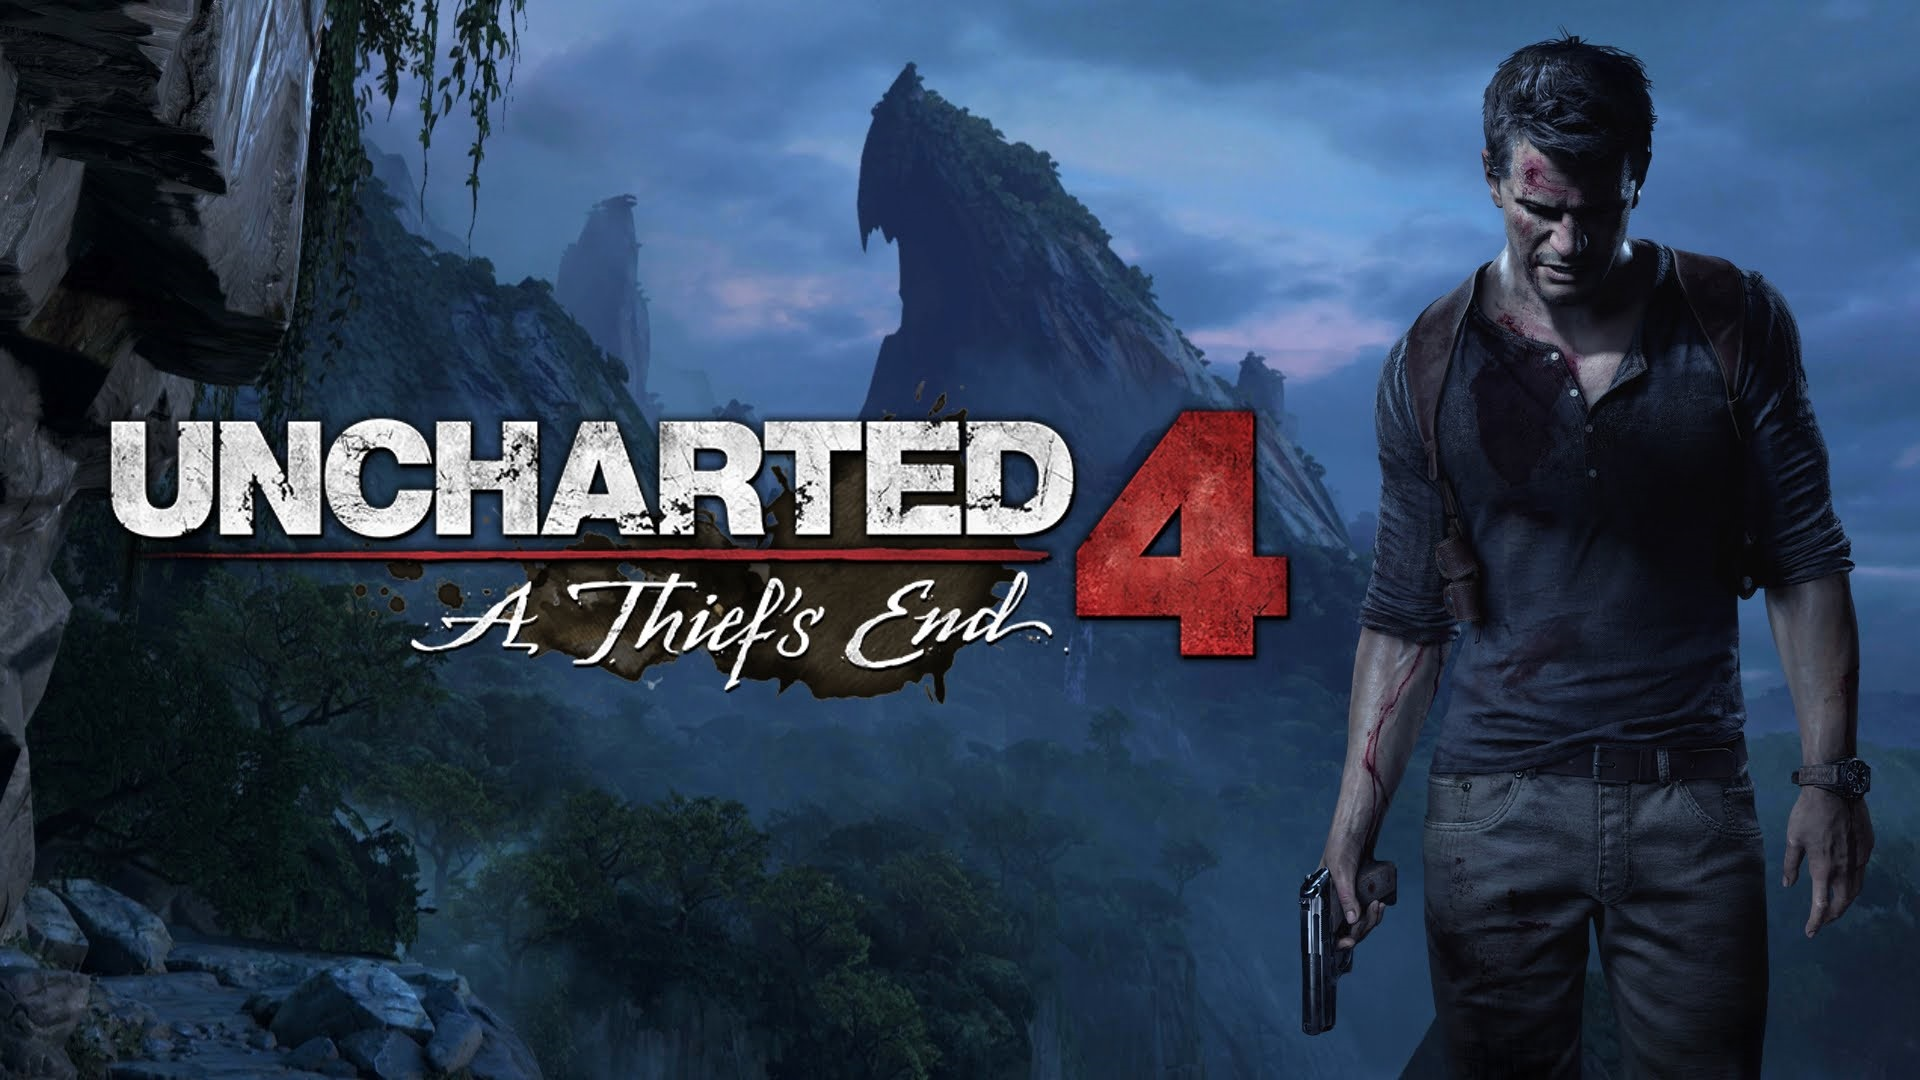 Uncharted 4 Iphone Wallpaper Posted By Zoey Walker